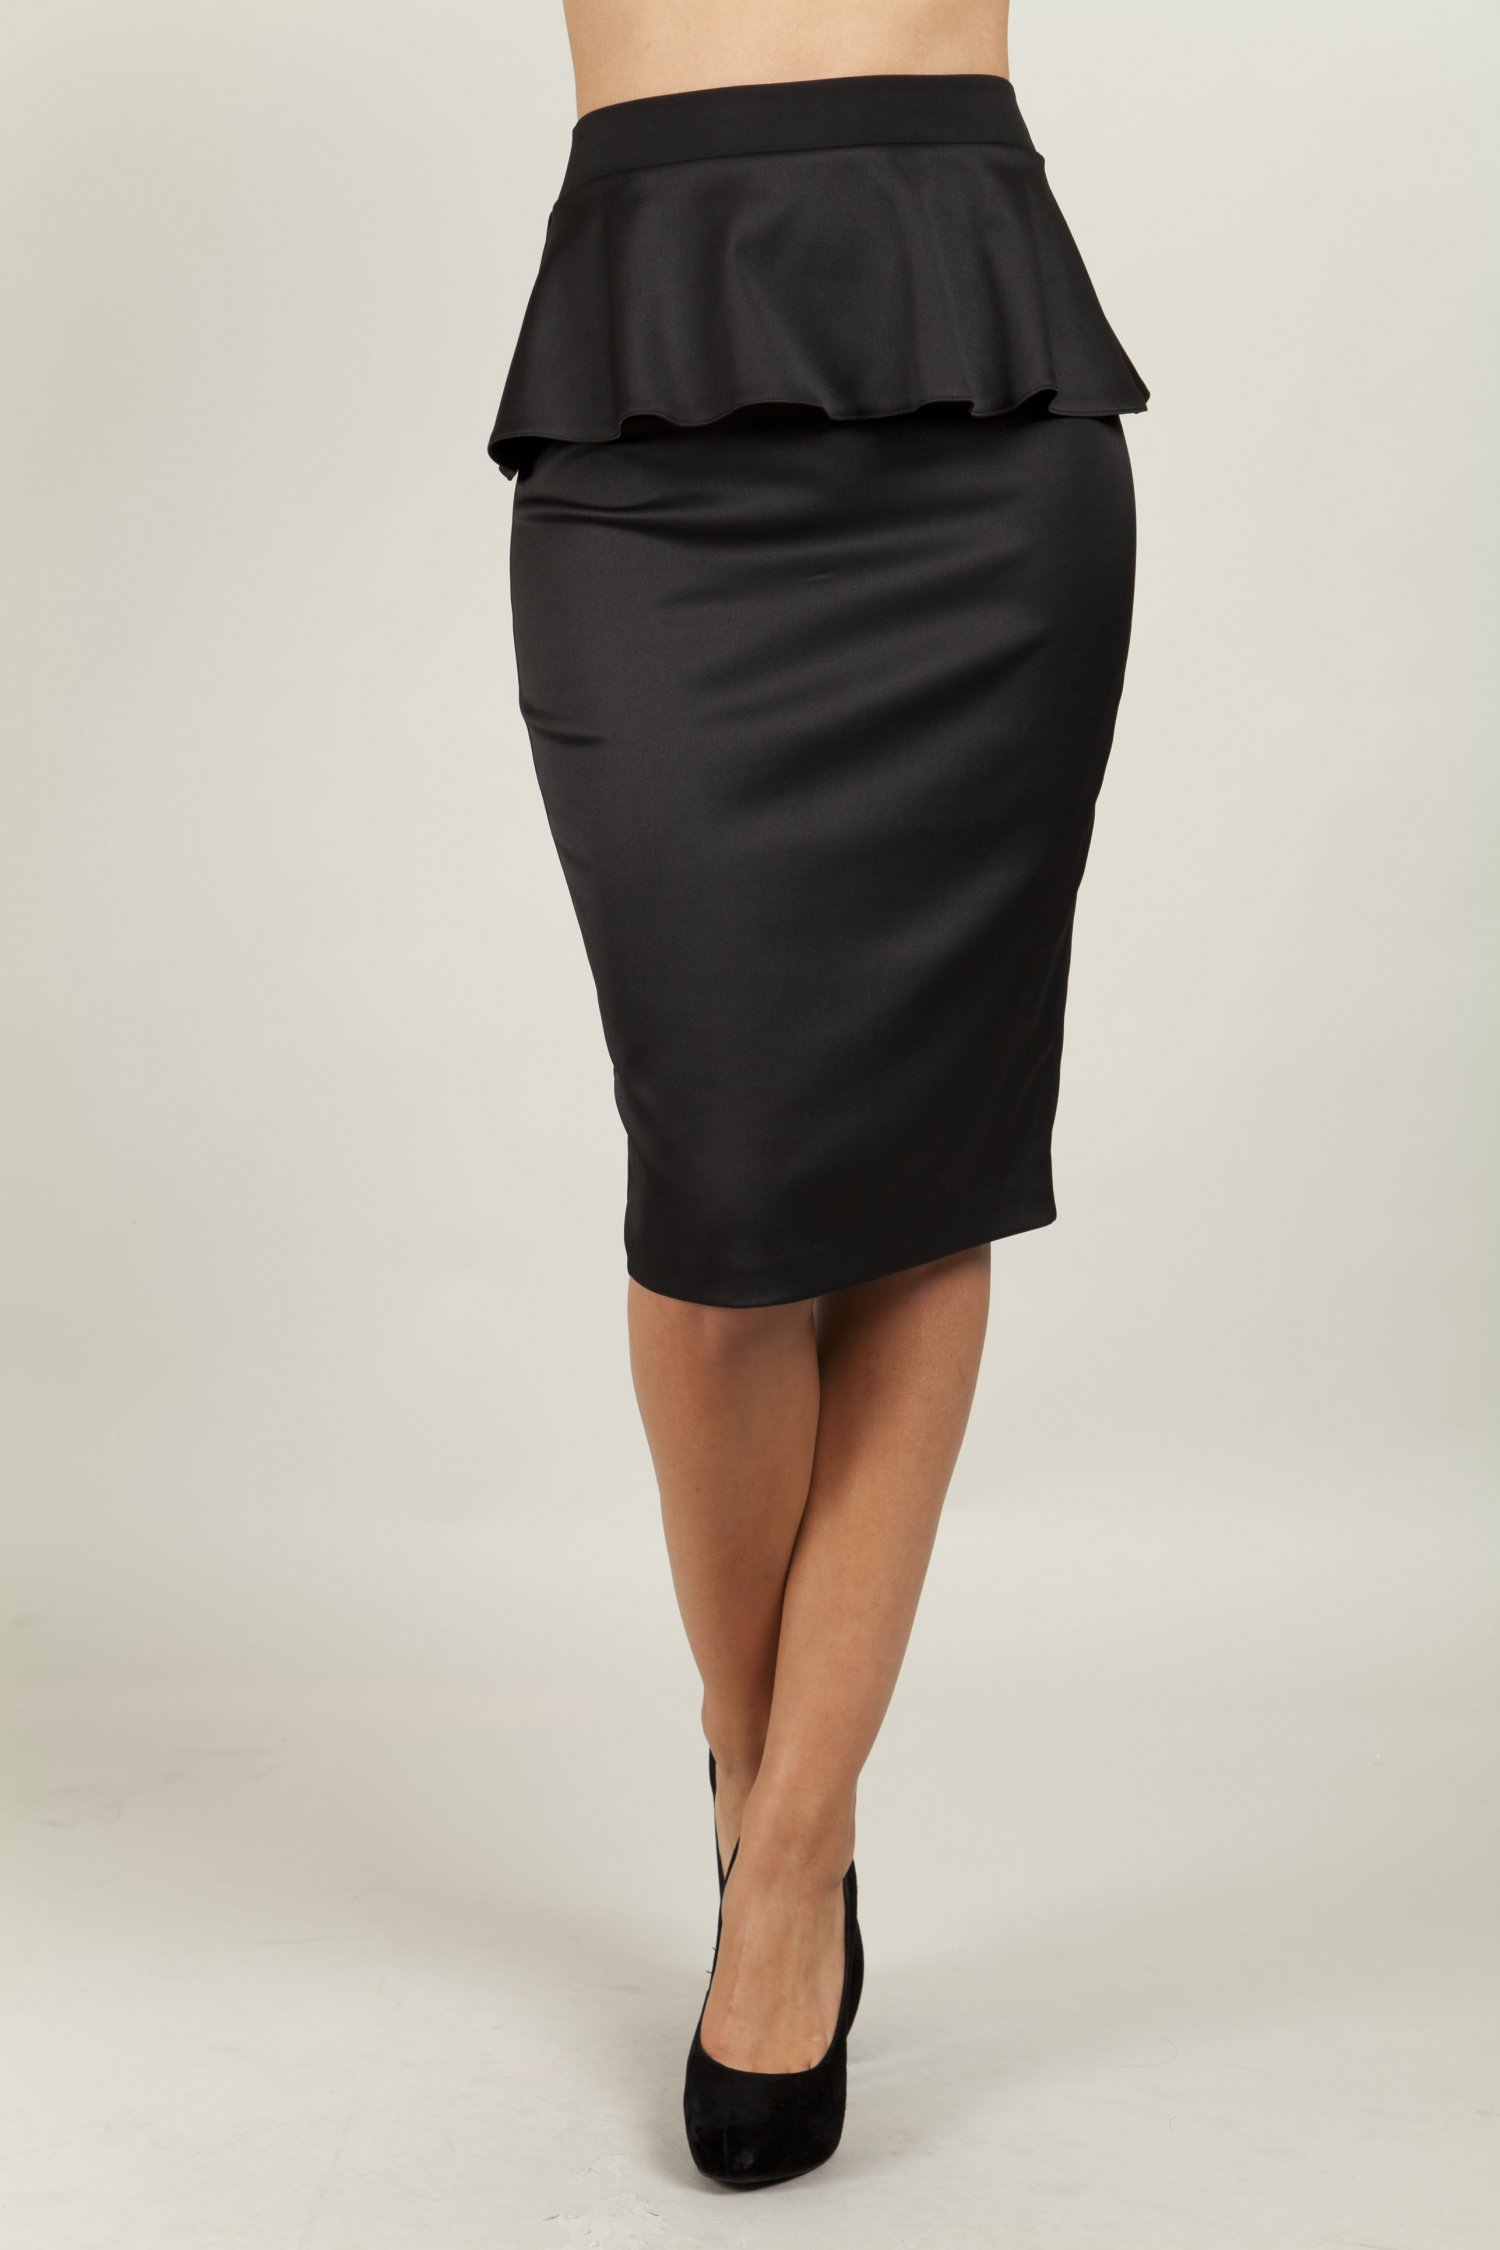 hereuloadu5.ga: black peplum skirt. From The Community. Amazon Try Prime All Xclusive Collection Womens Peplum Skirt Bodycon Pencil Skirts. by Xclusive Collection. $ $ 25 FREE Shipping on eligible orders. out of 5 stars 5. Product Features Peplum Frill Midi Skirts.